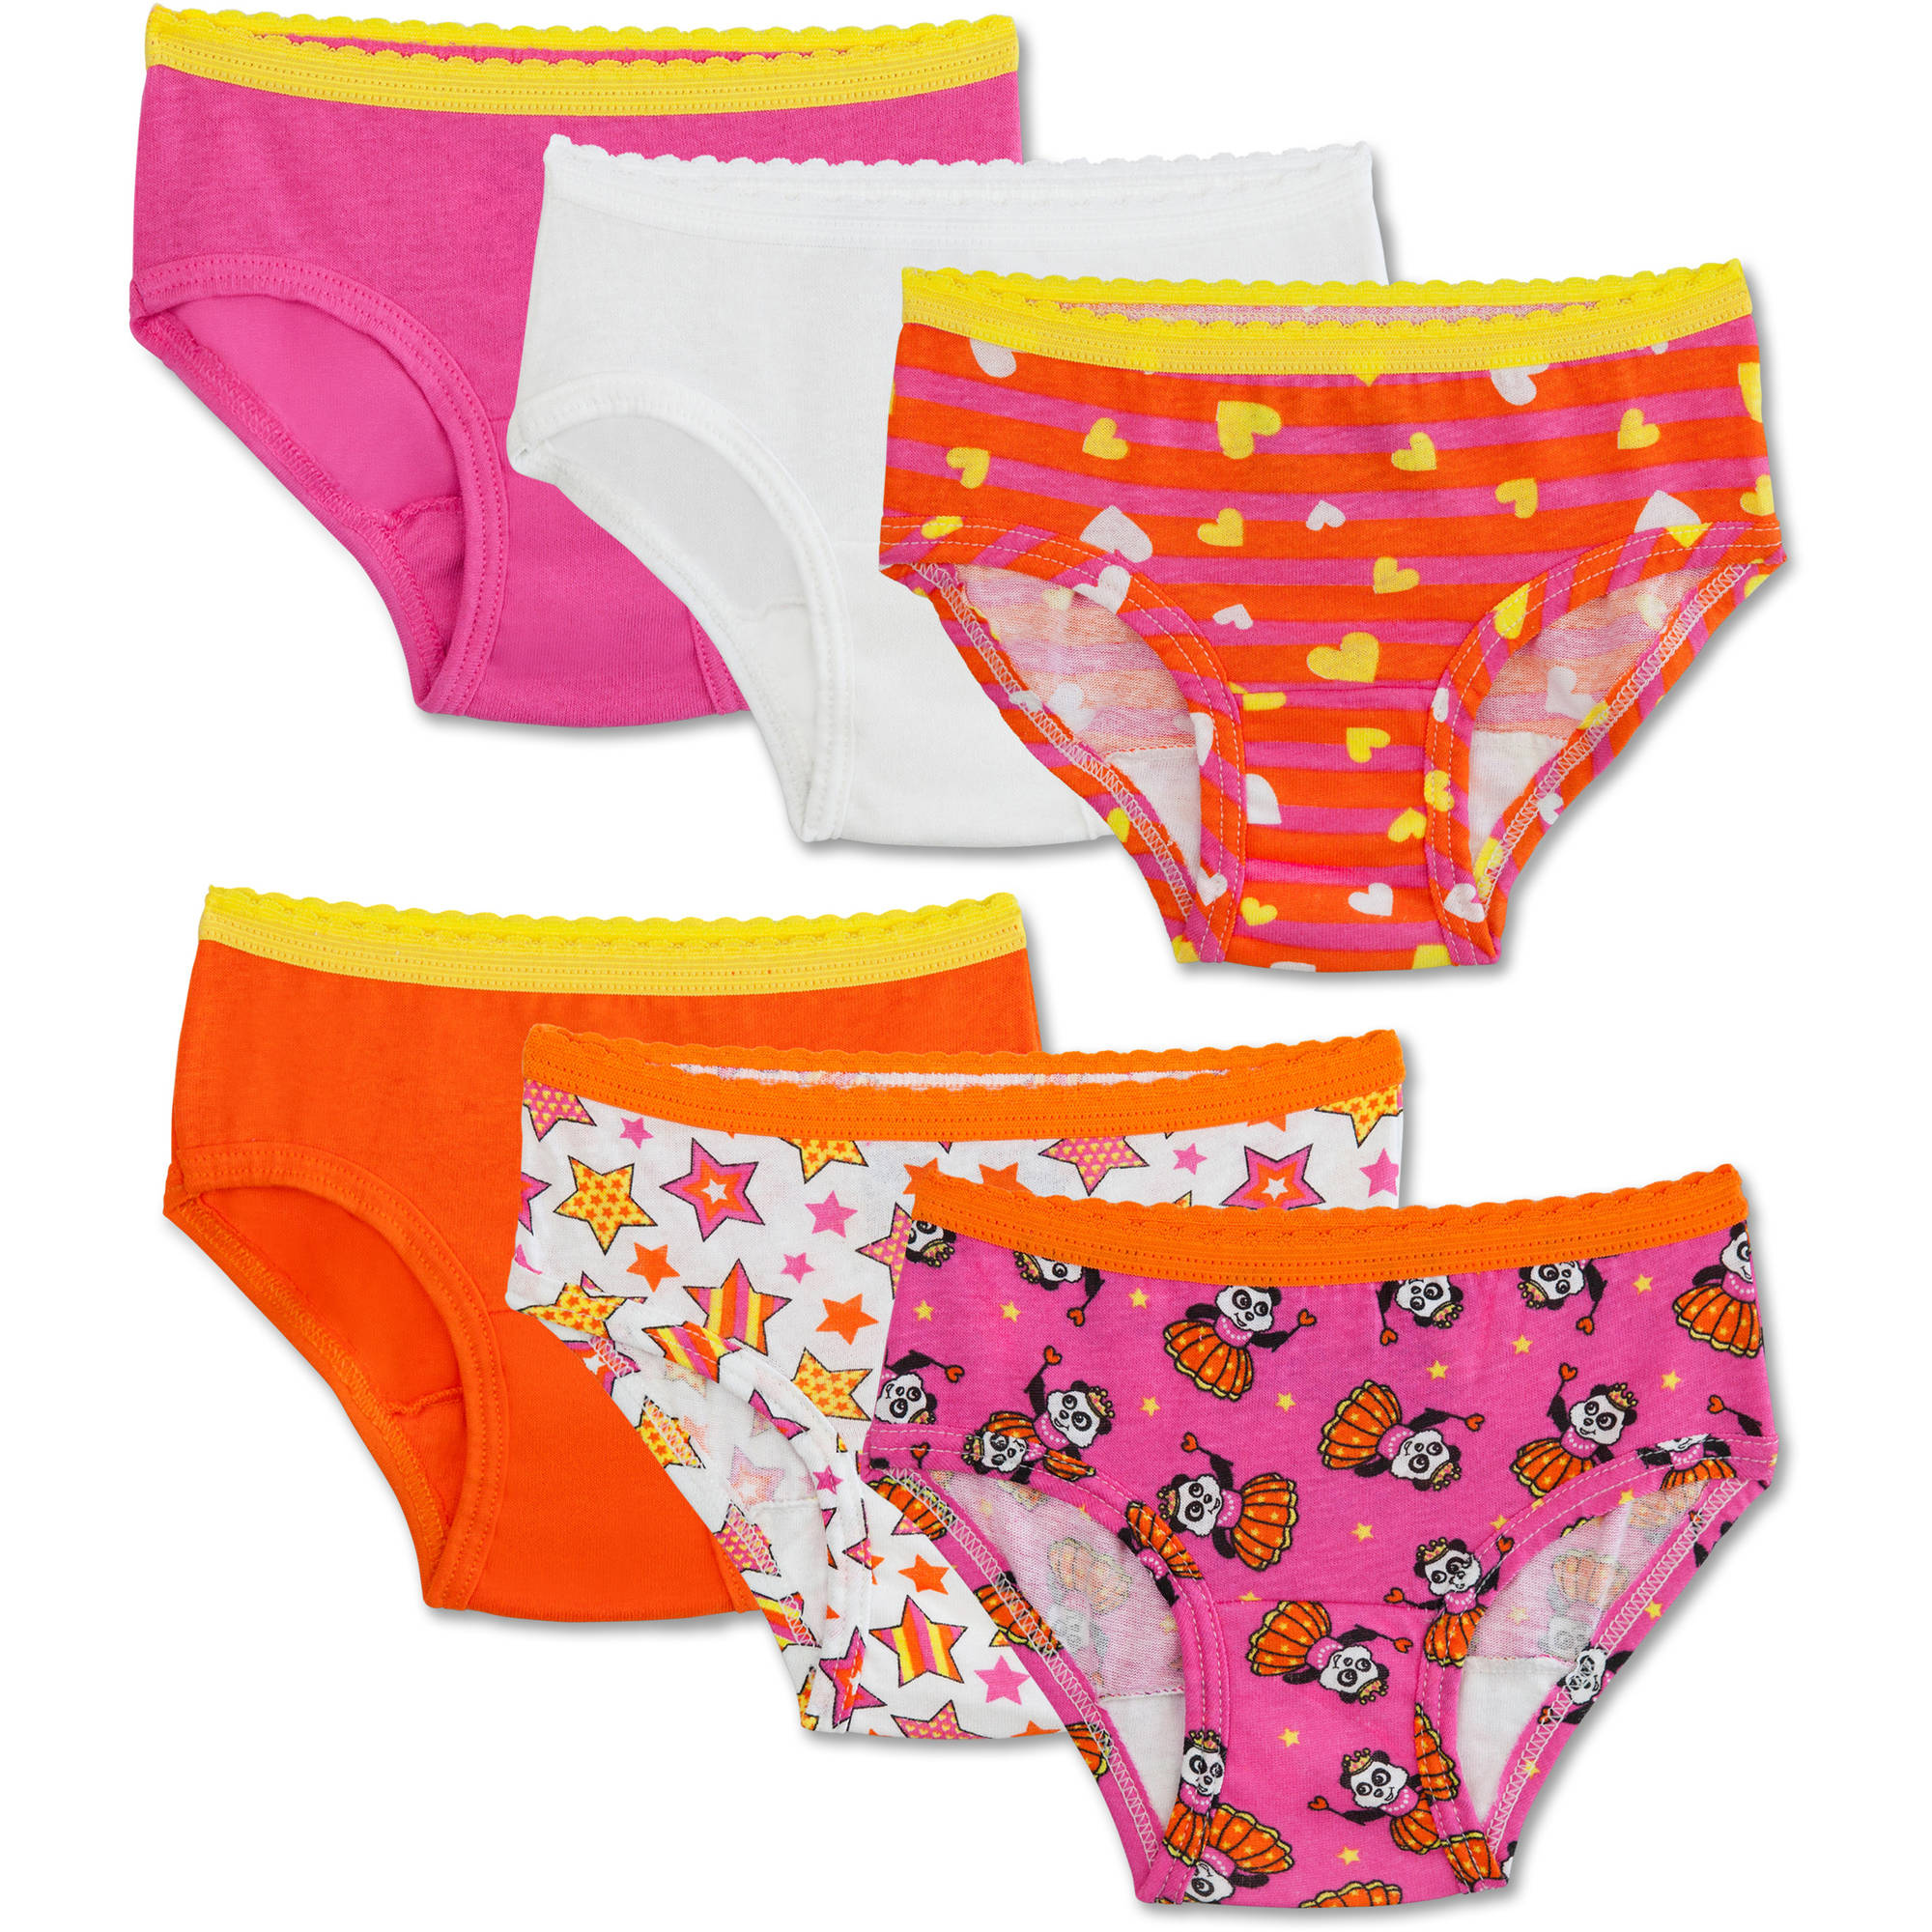 Fruit of the Loom Toddler Girls 100% Cotton Hipster Underwear Panties, 6-Pack